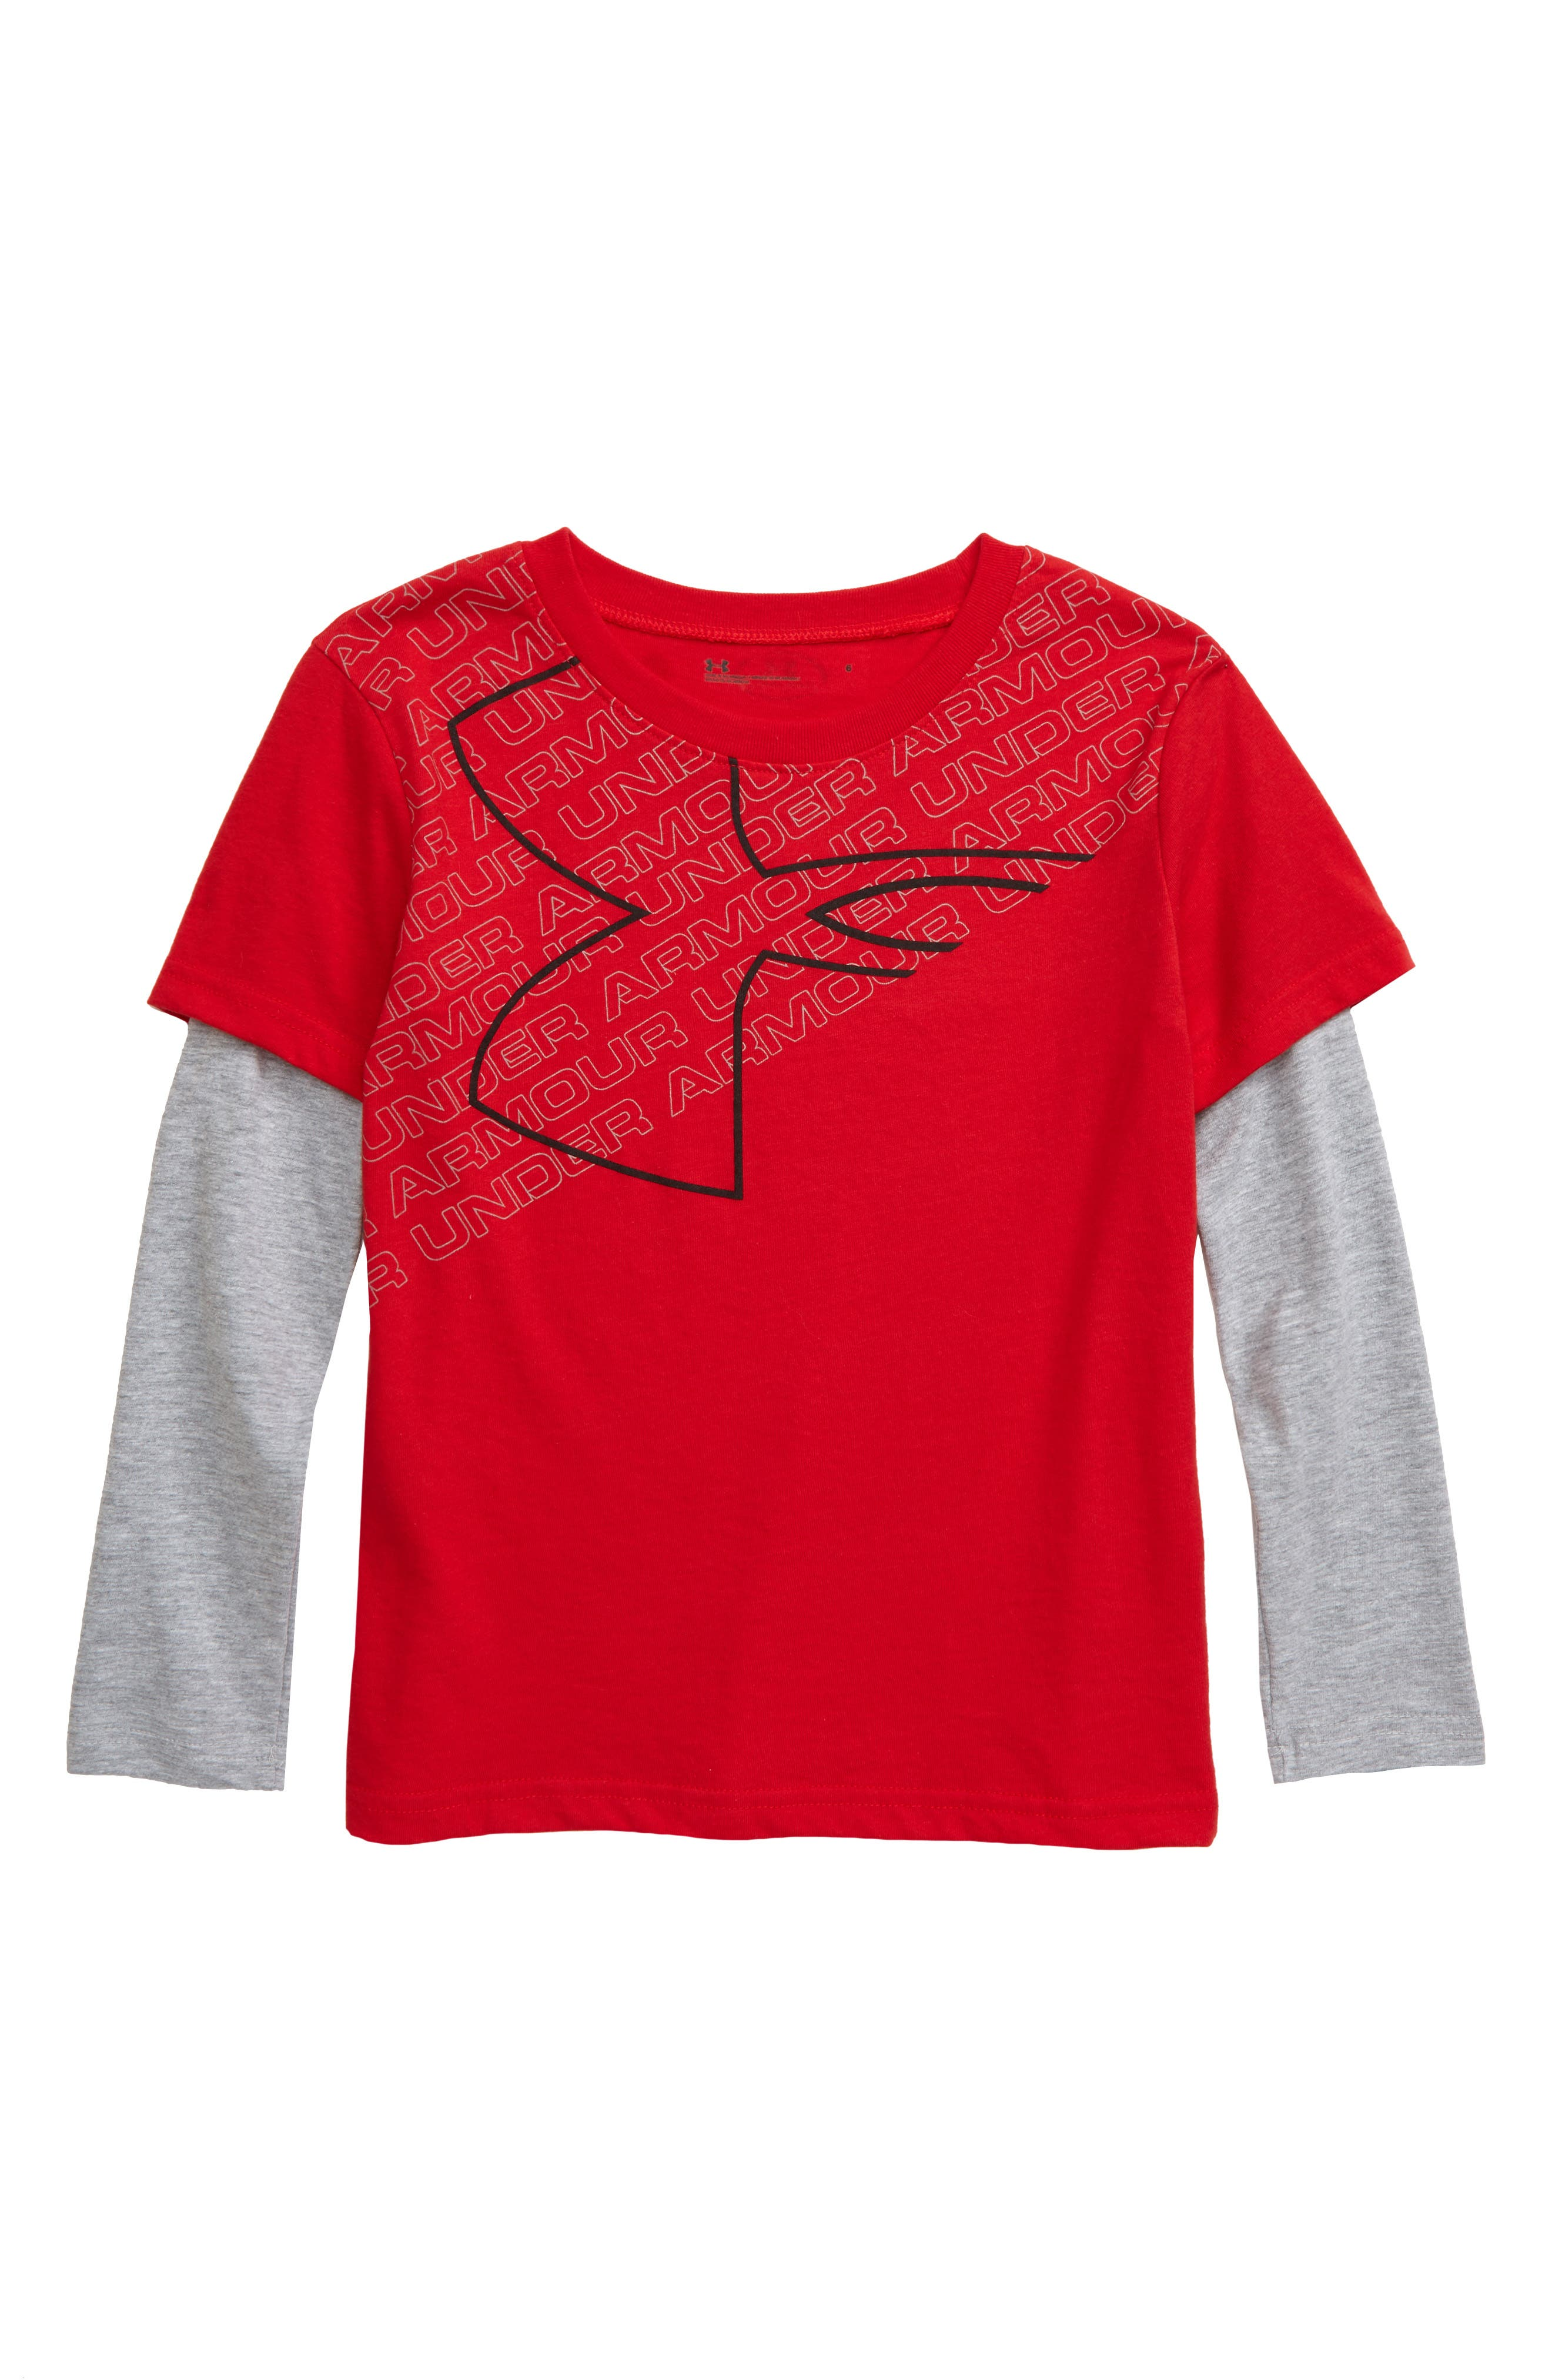 Toddler Boys Under Armour Big Logo Slider Shirt Size 4T  Red